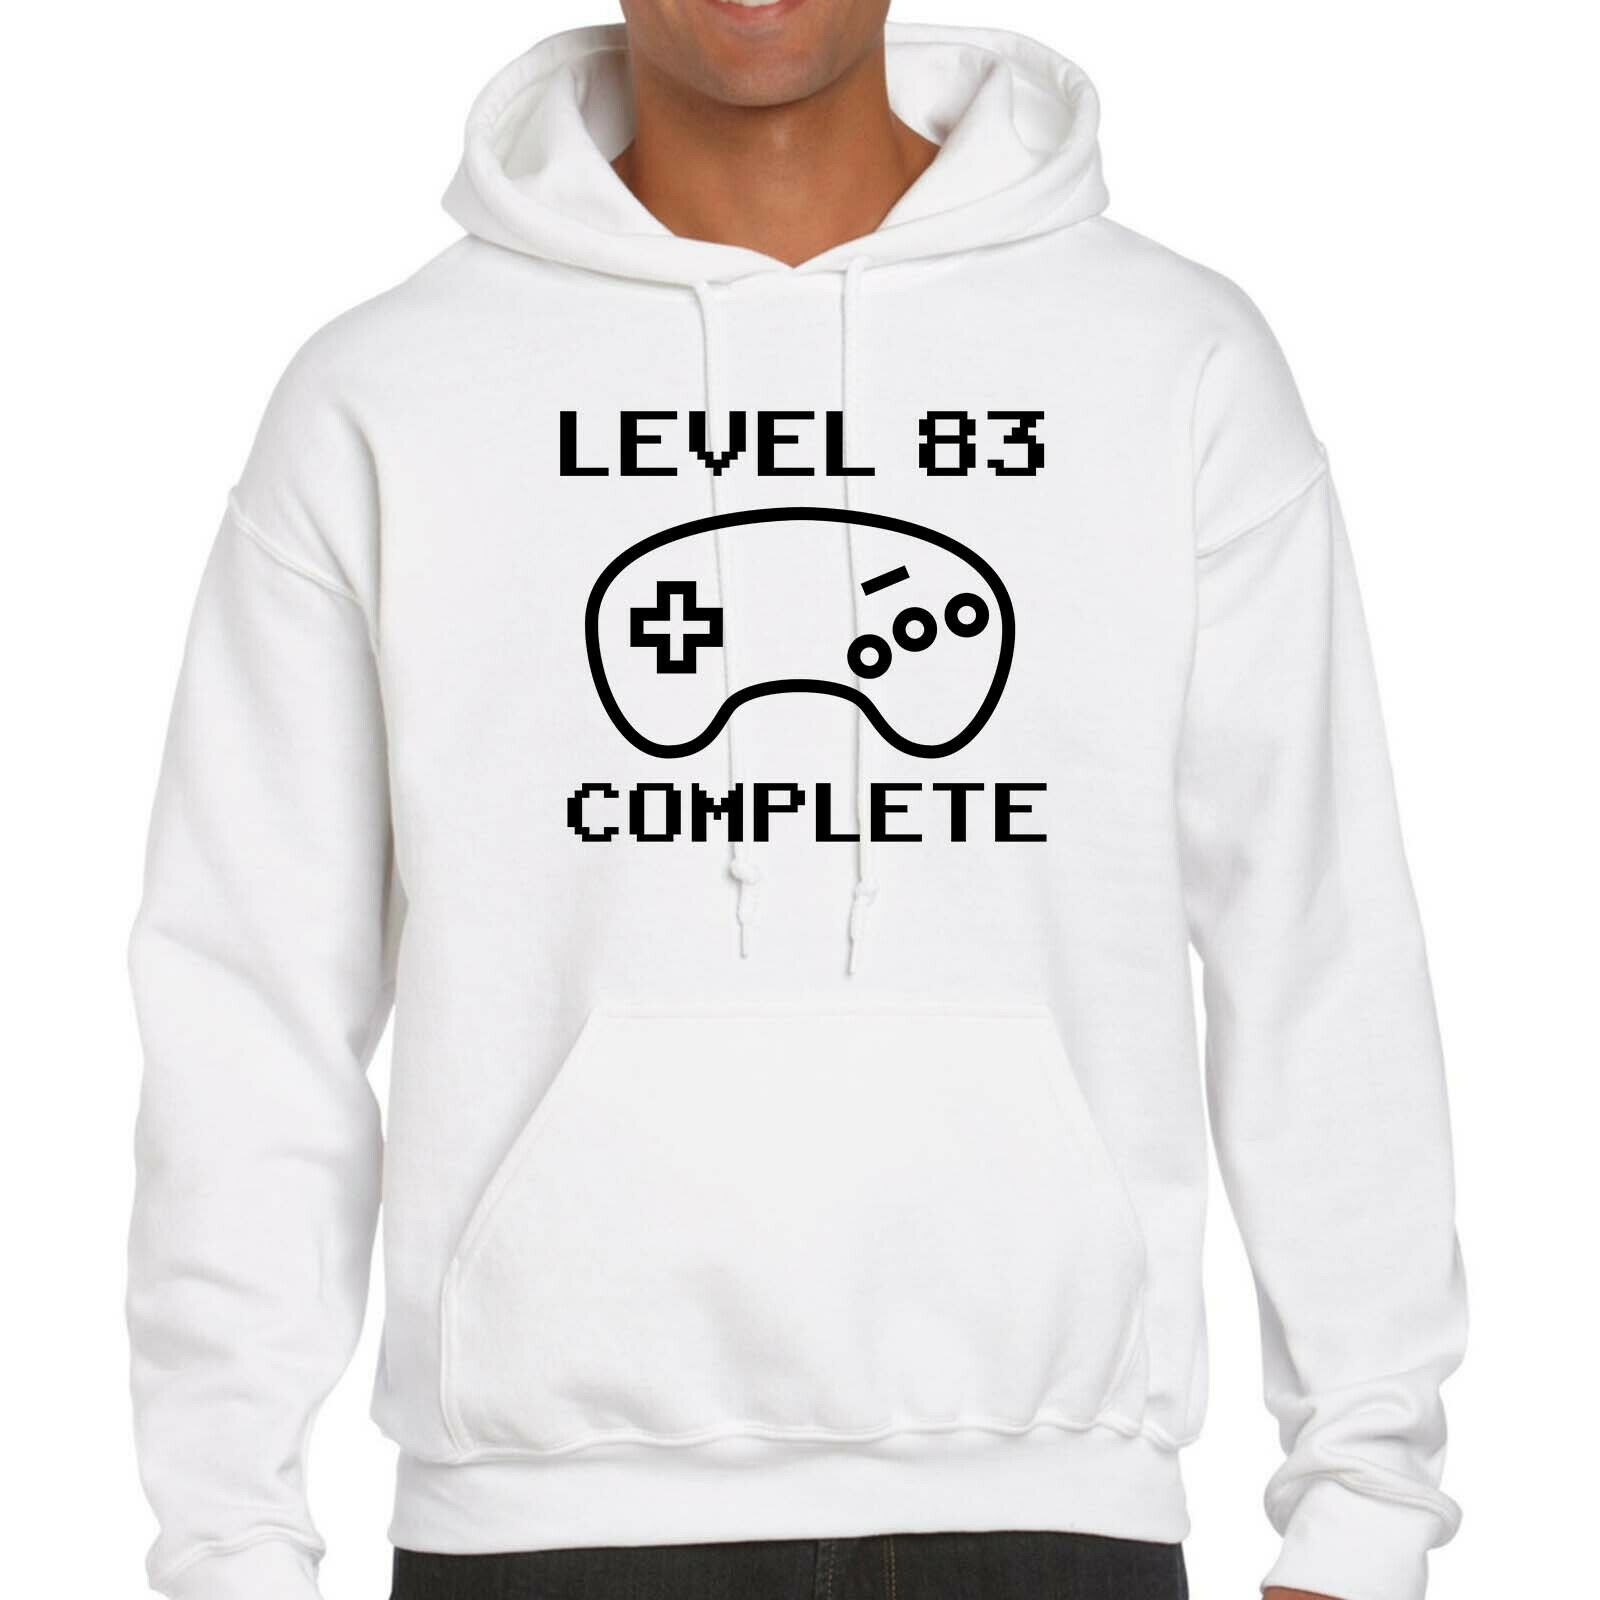 Level 83 Complete Hoodie - 83rd Birthday, Gift, Gaming, Retro